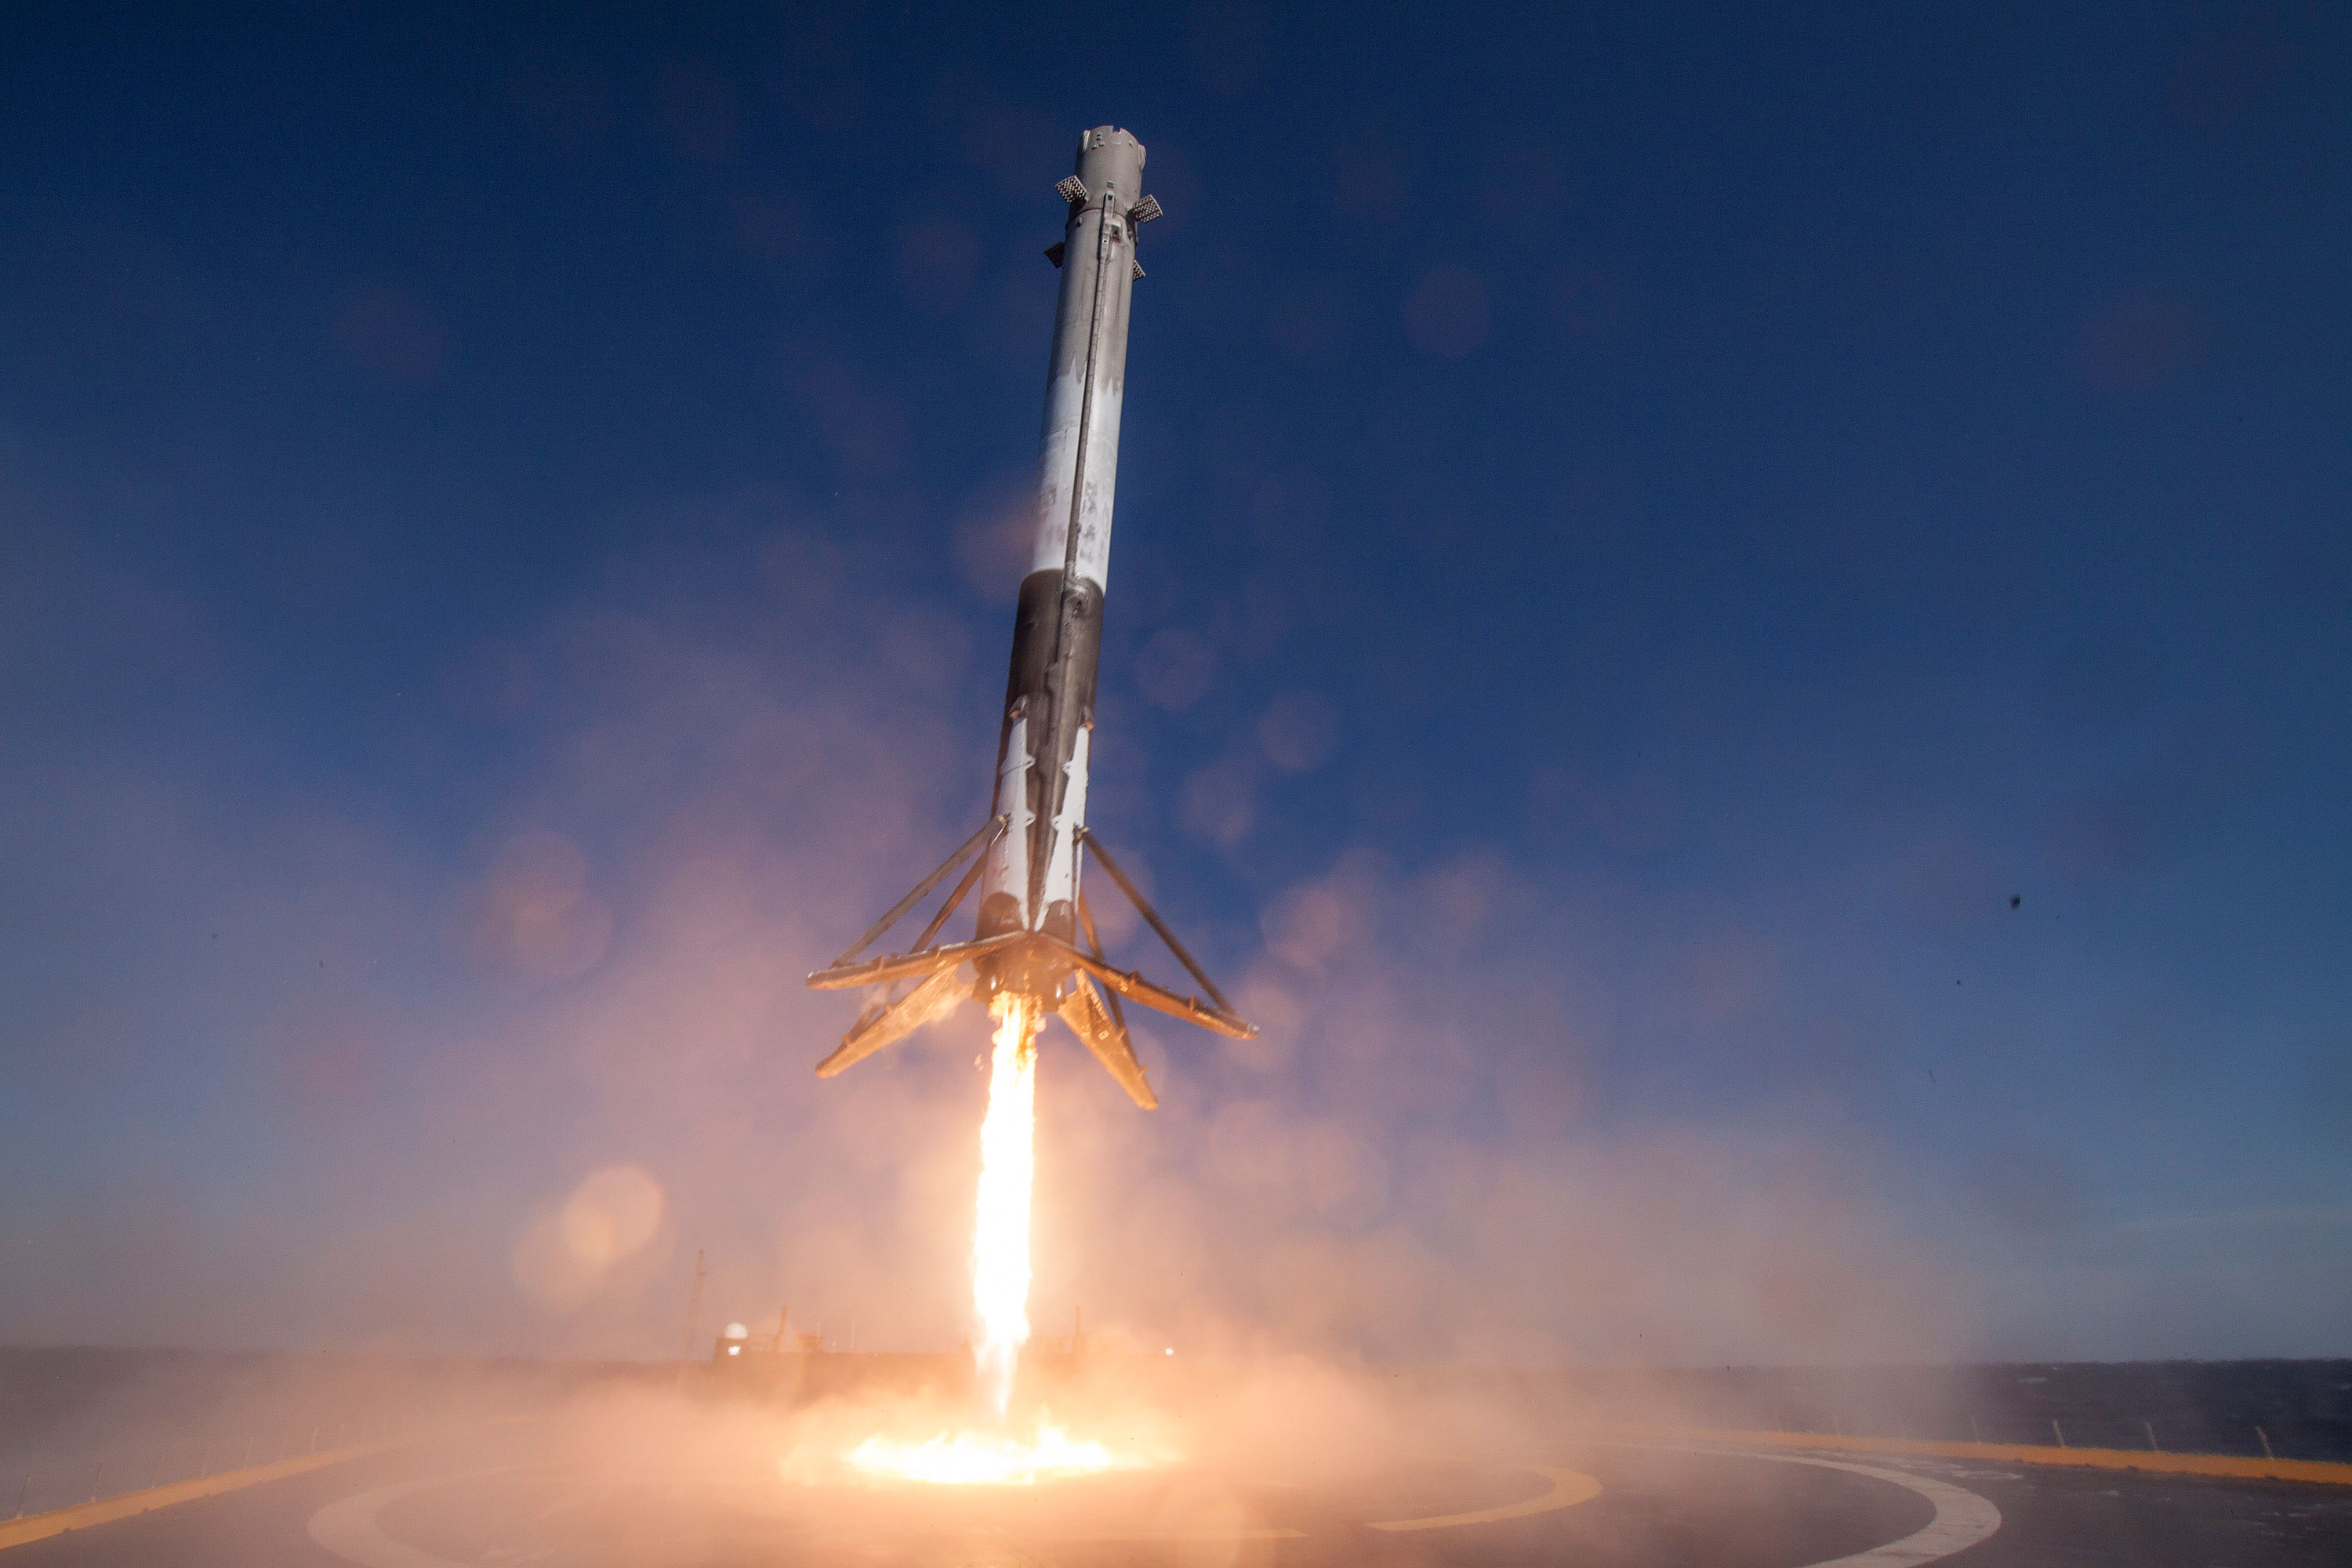 A SpaceX Falcon 9 rocket makes a successful landing here on Earth.